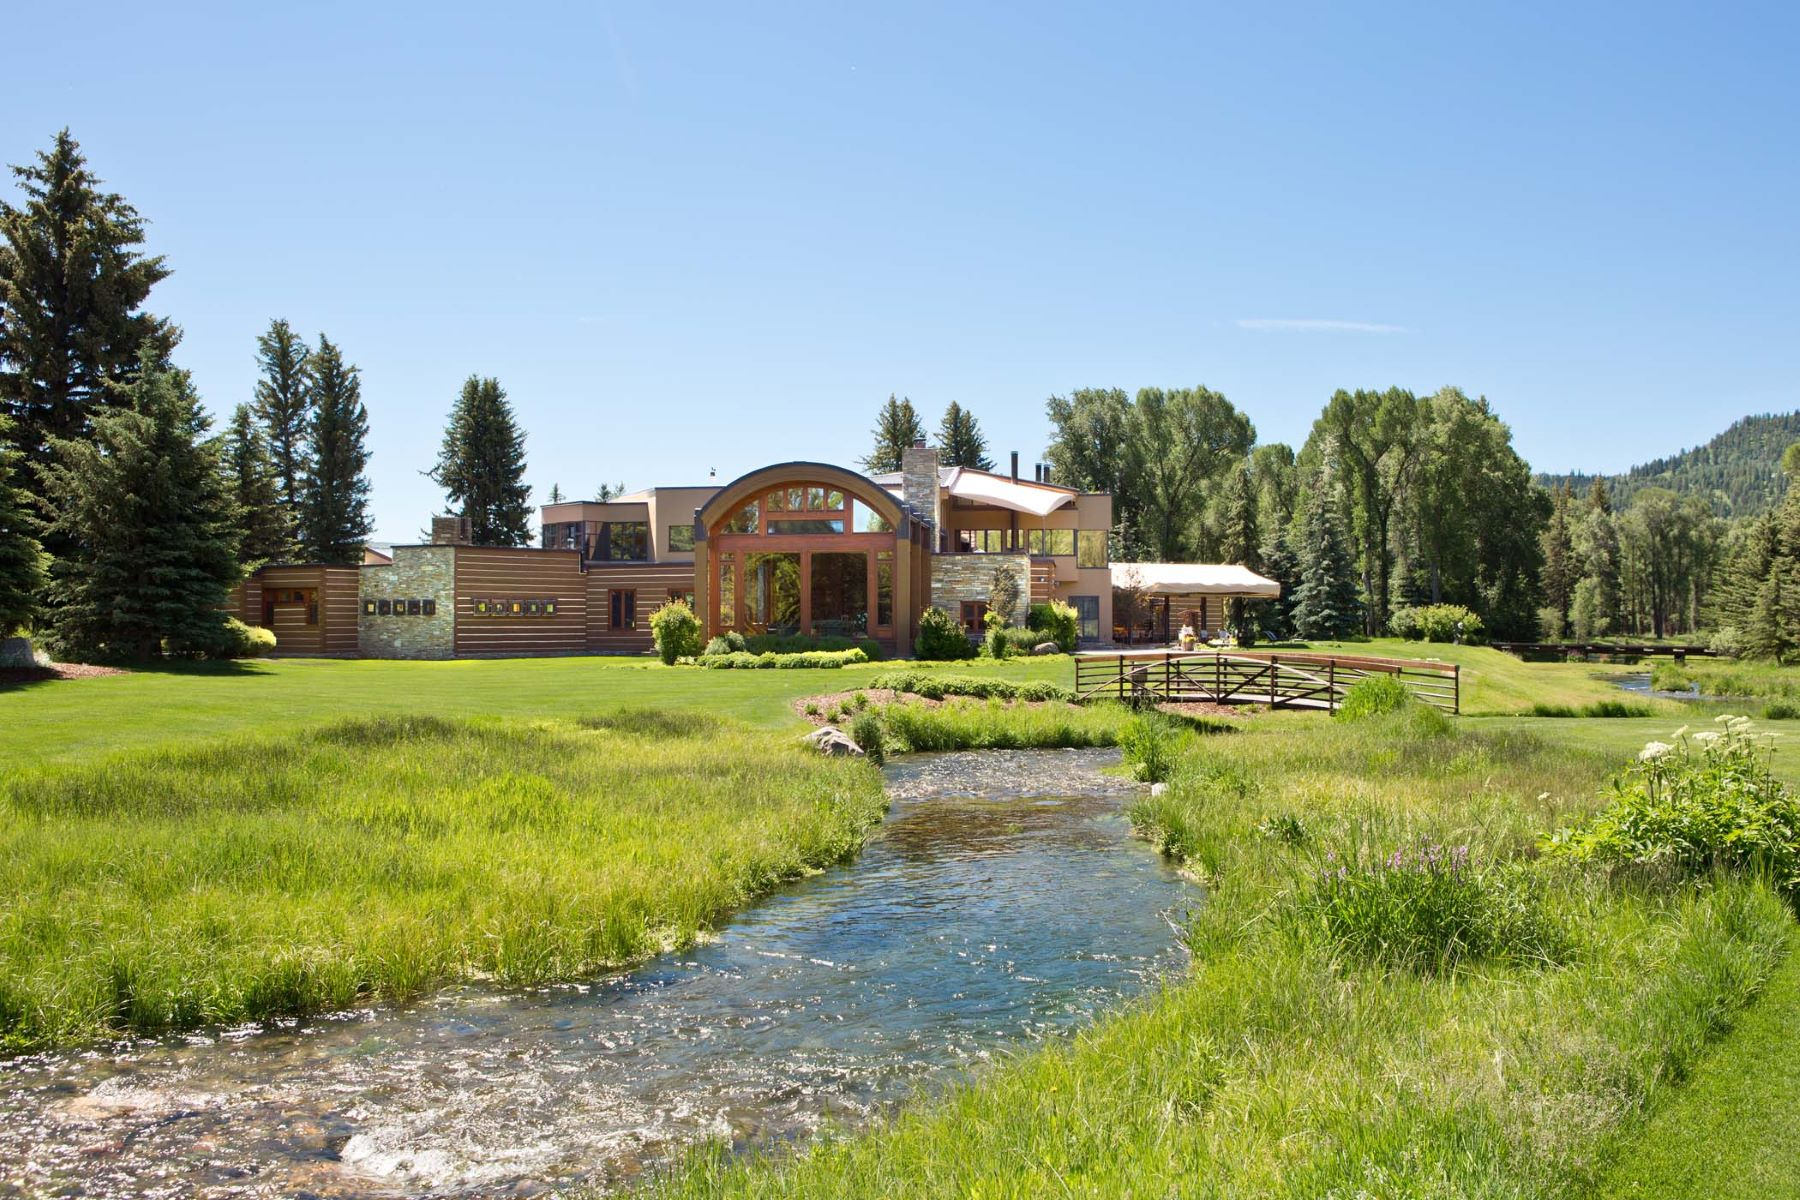 Single Family Home for Sale at Creekside Elegance 5300 Prince Place Jackson, Wyoming, 83001 Jackson Hole, United States